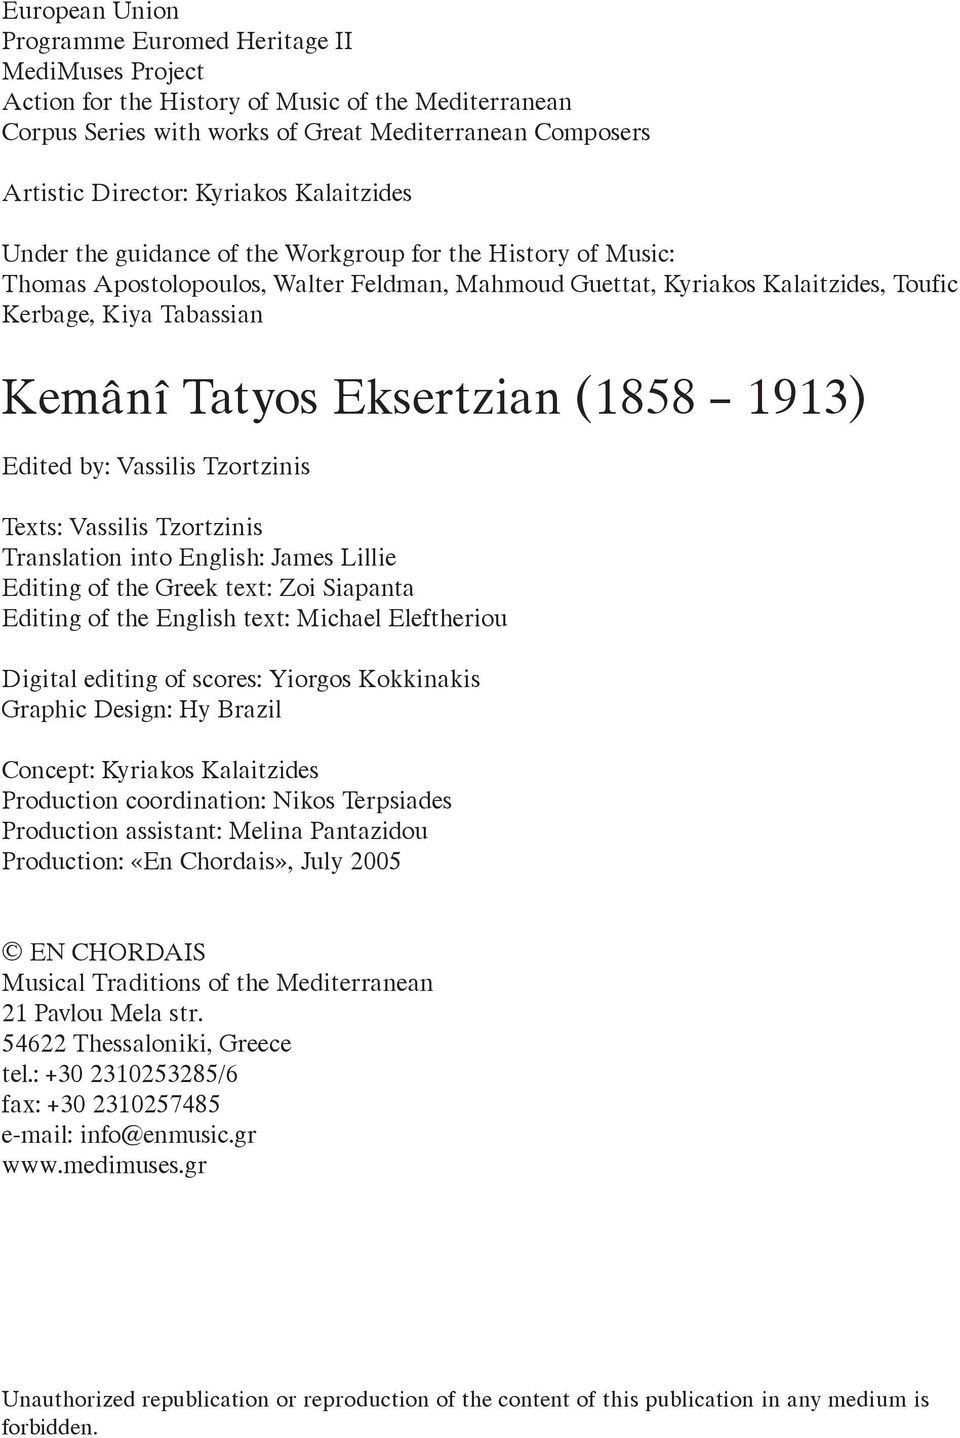 Tatyos Eksertzian (1858 1913) Edited by: Vassilis Tzortzinis Texts: Vassilis Tzortzinis Translation into English: James Lillie Editing of the Greek text: Zoi Siapanta Editing of the English text: